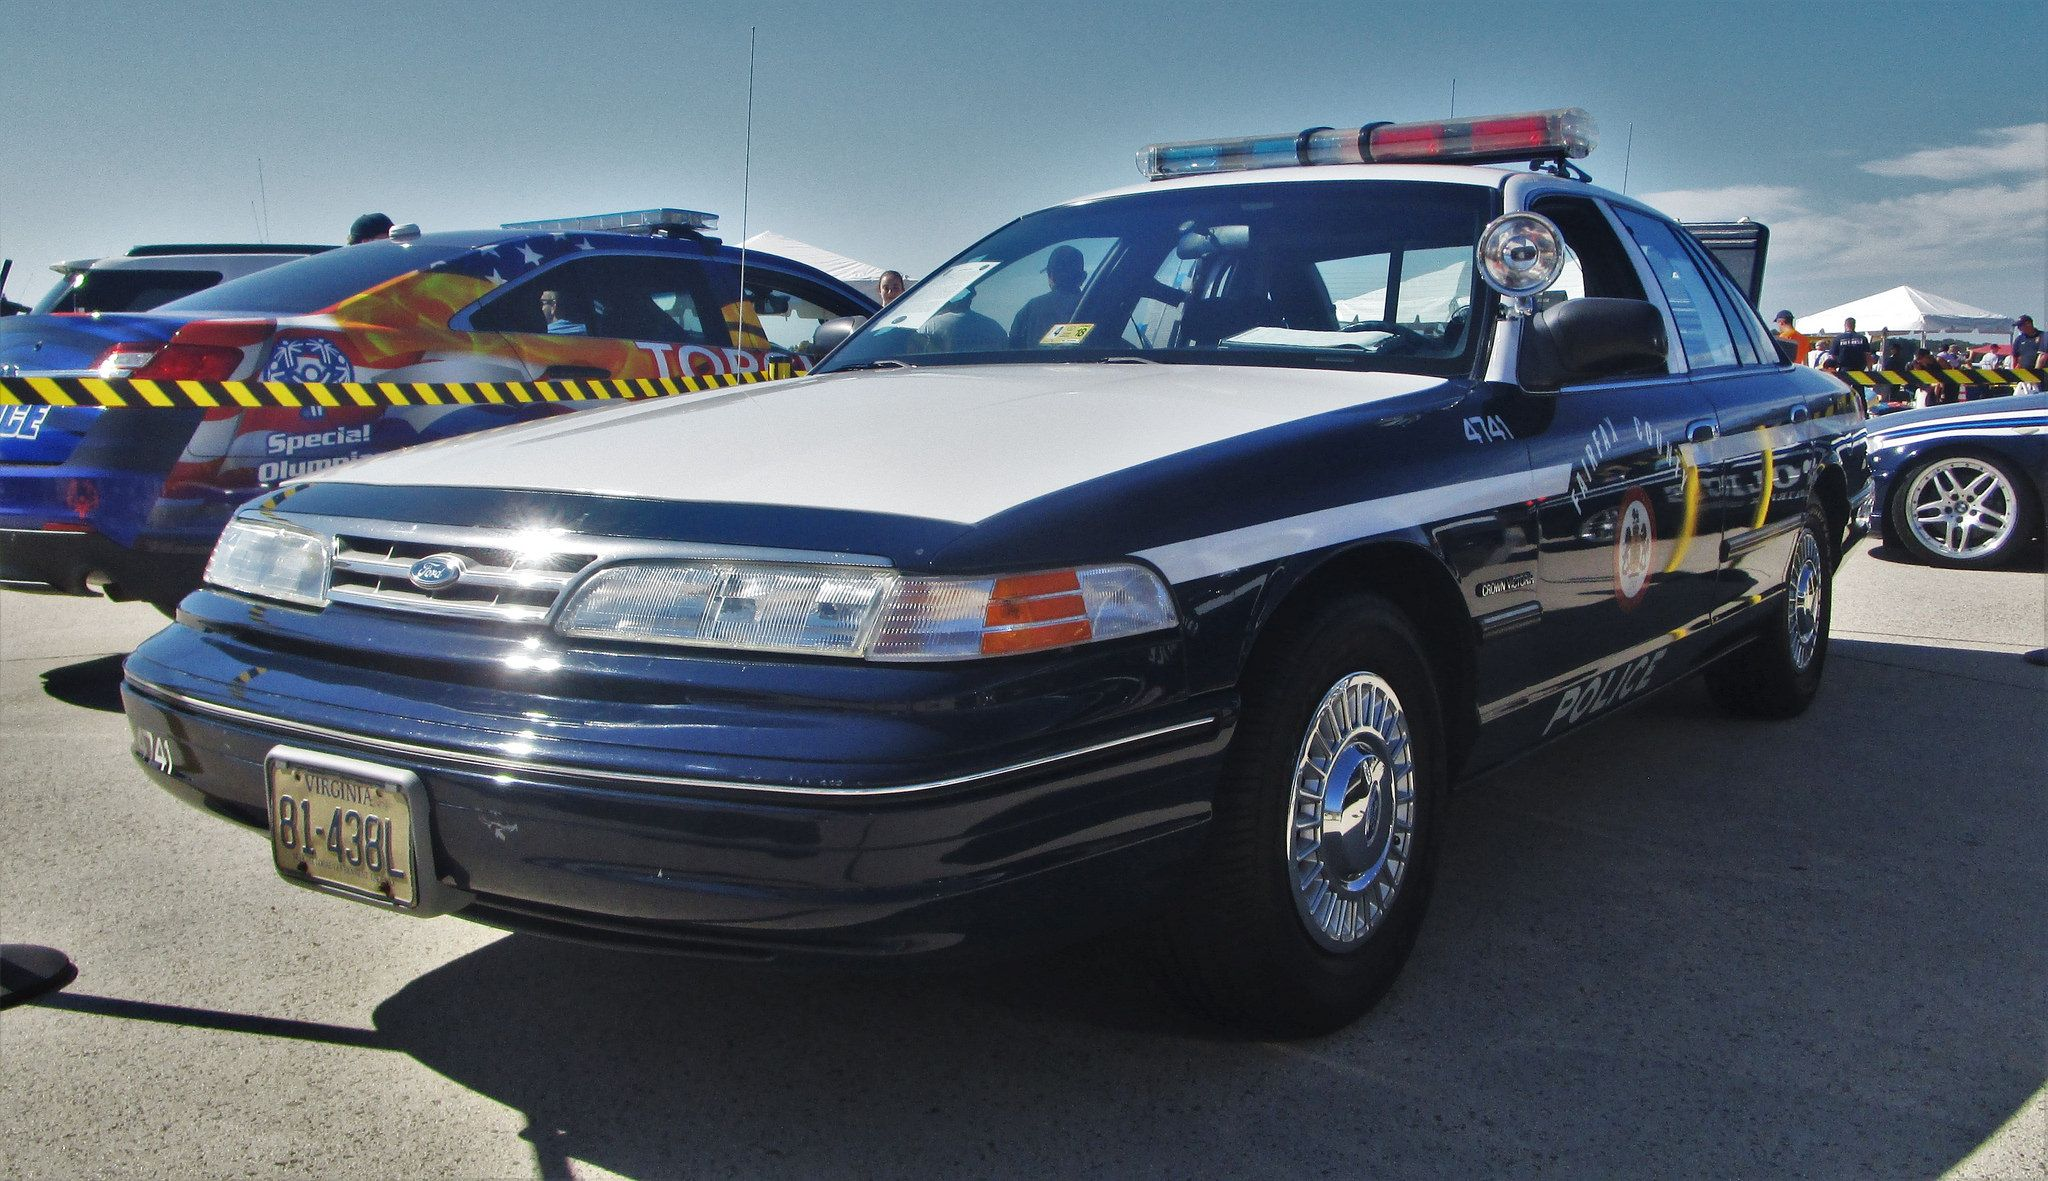 Fairfax County Police Department 1993 Ford Crown Victoria Police Interceptor Victoria Police Police Police Cars